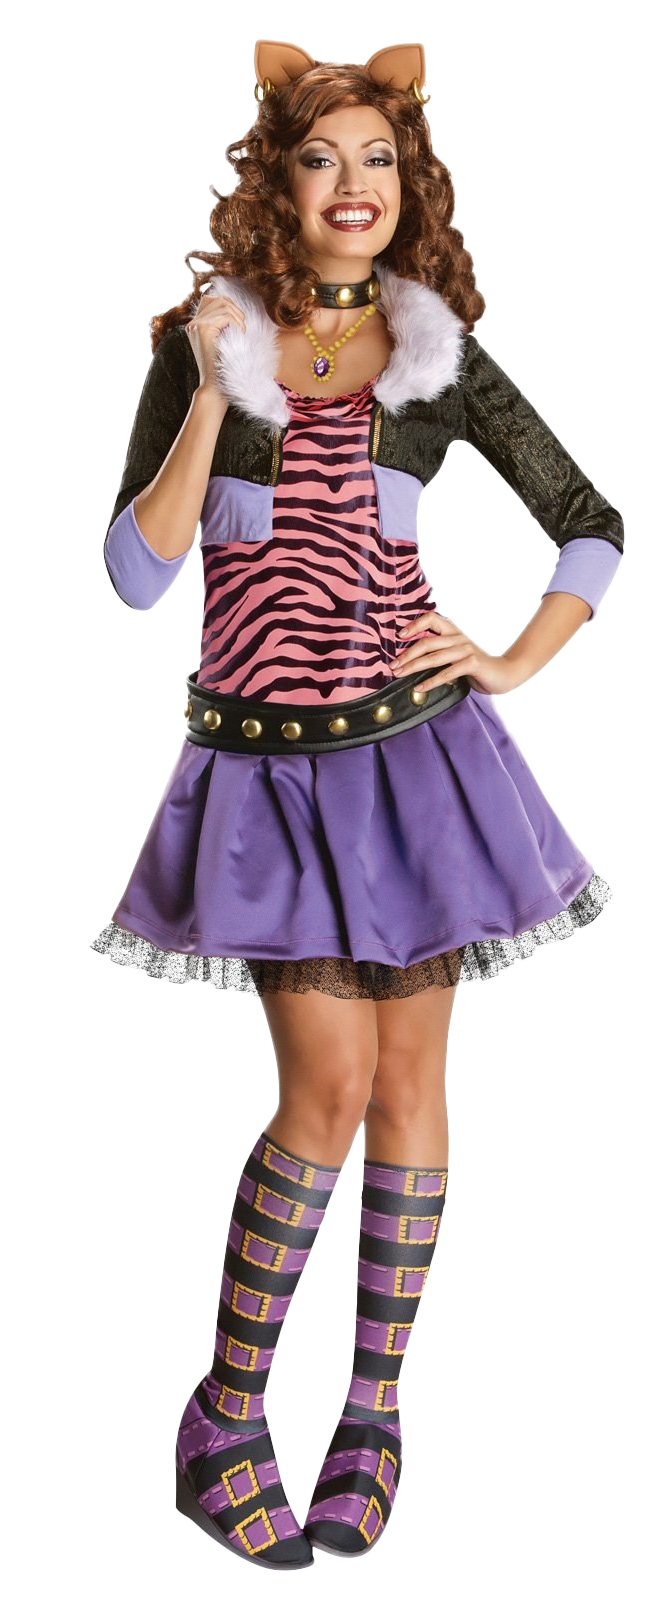 clawdeen wolf dress